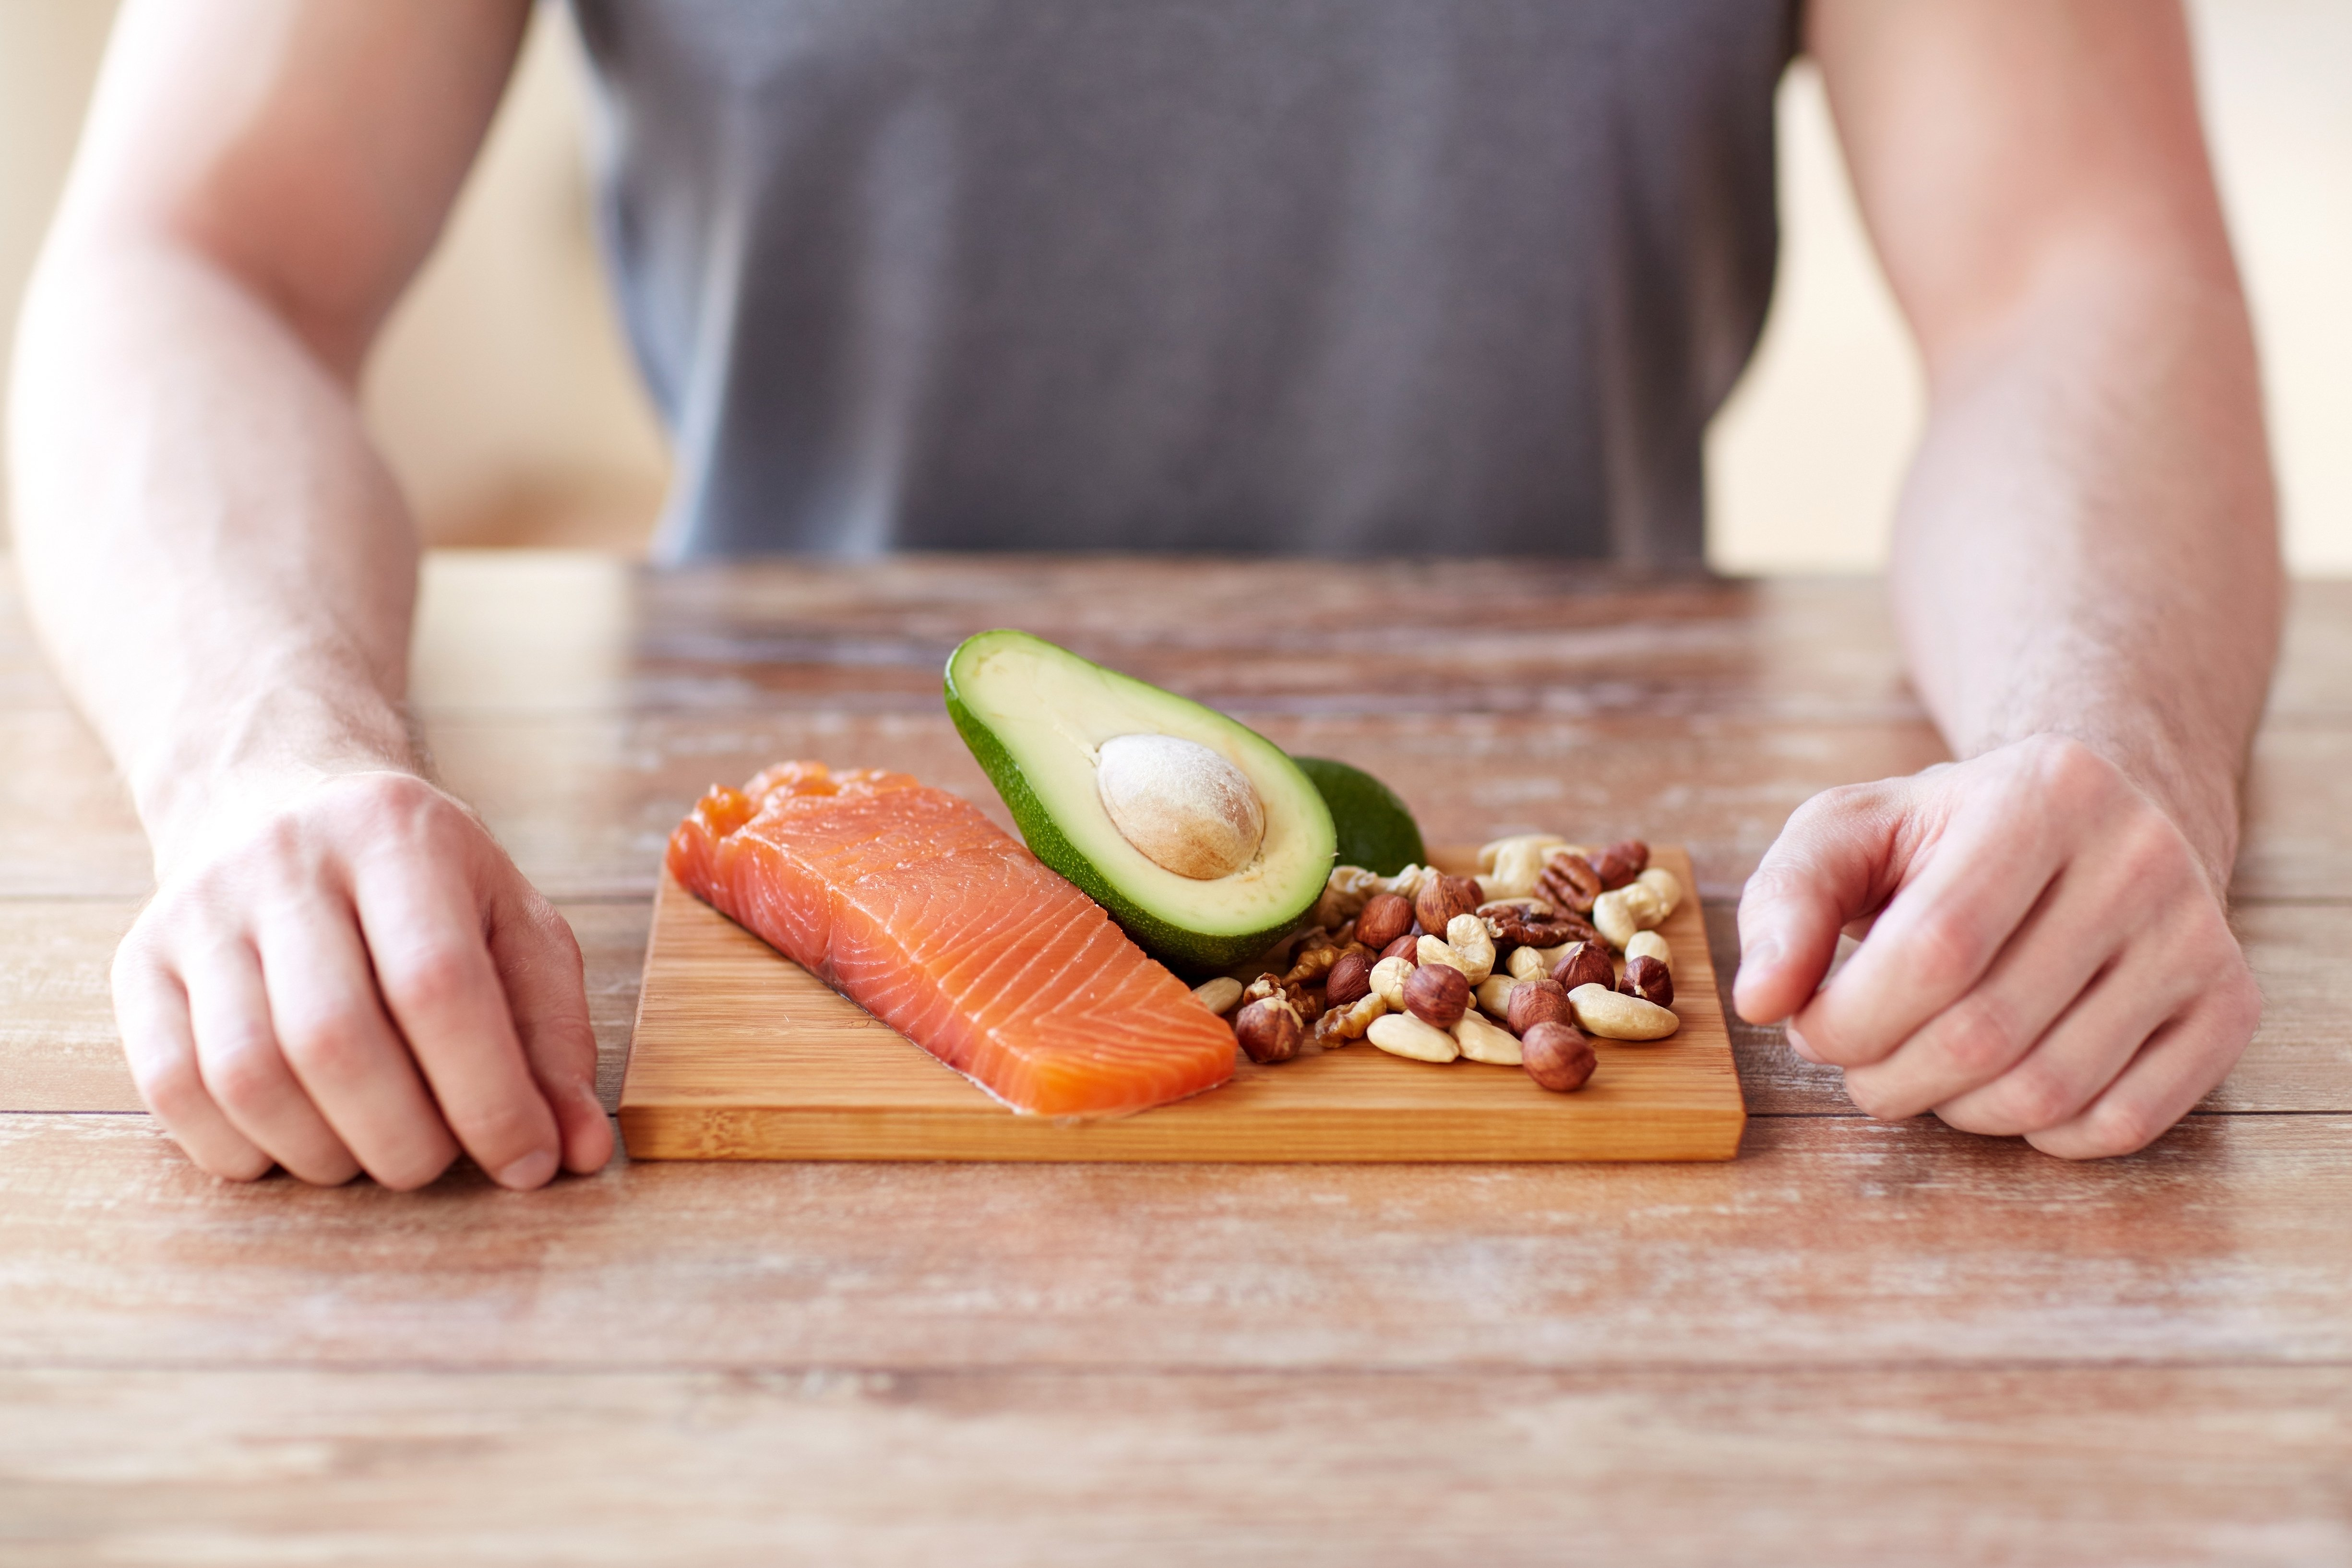 Young man with salmon, avocado, nuts —parts of a paleo diet